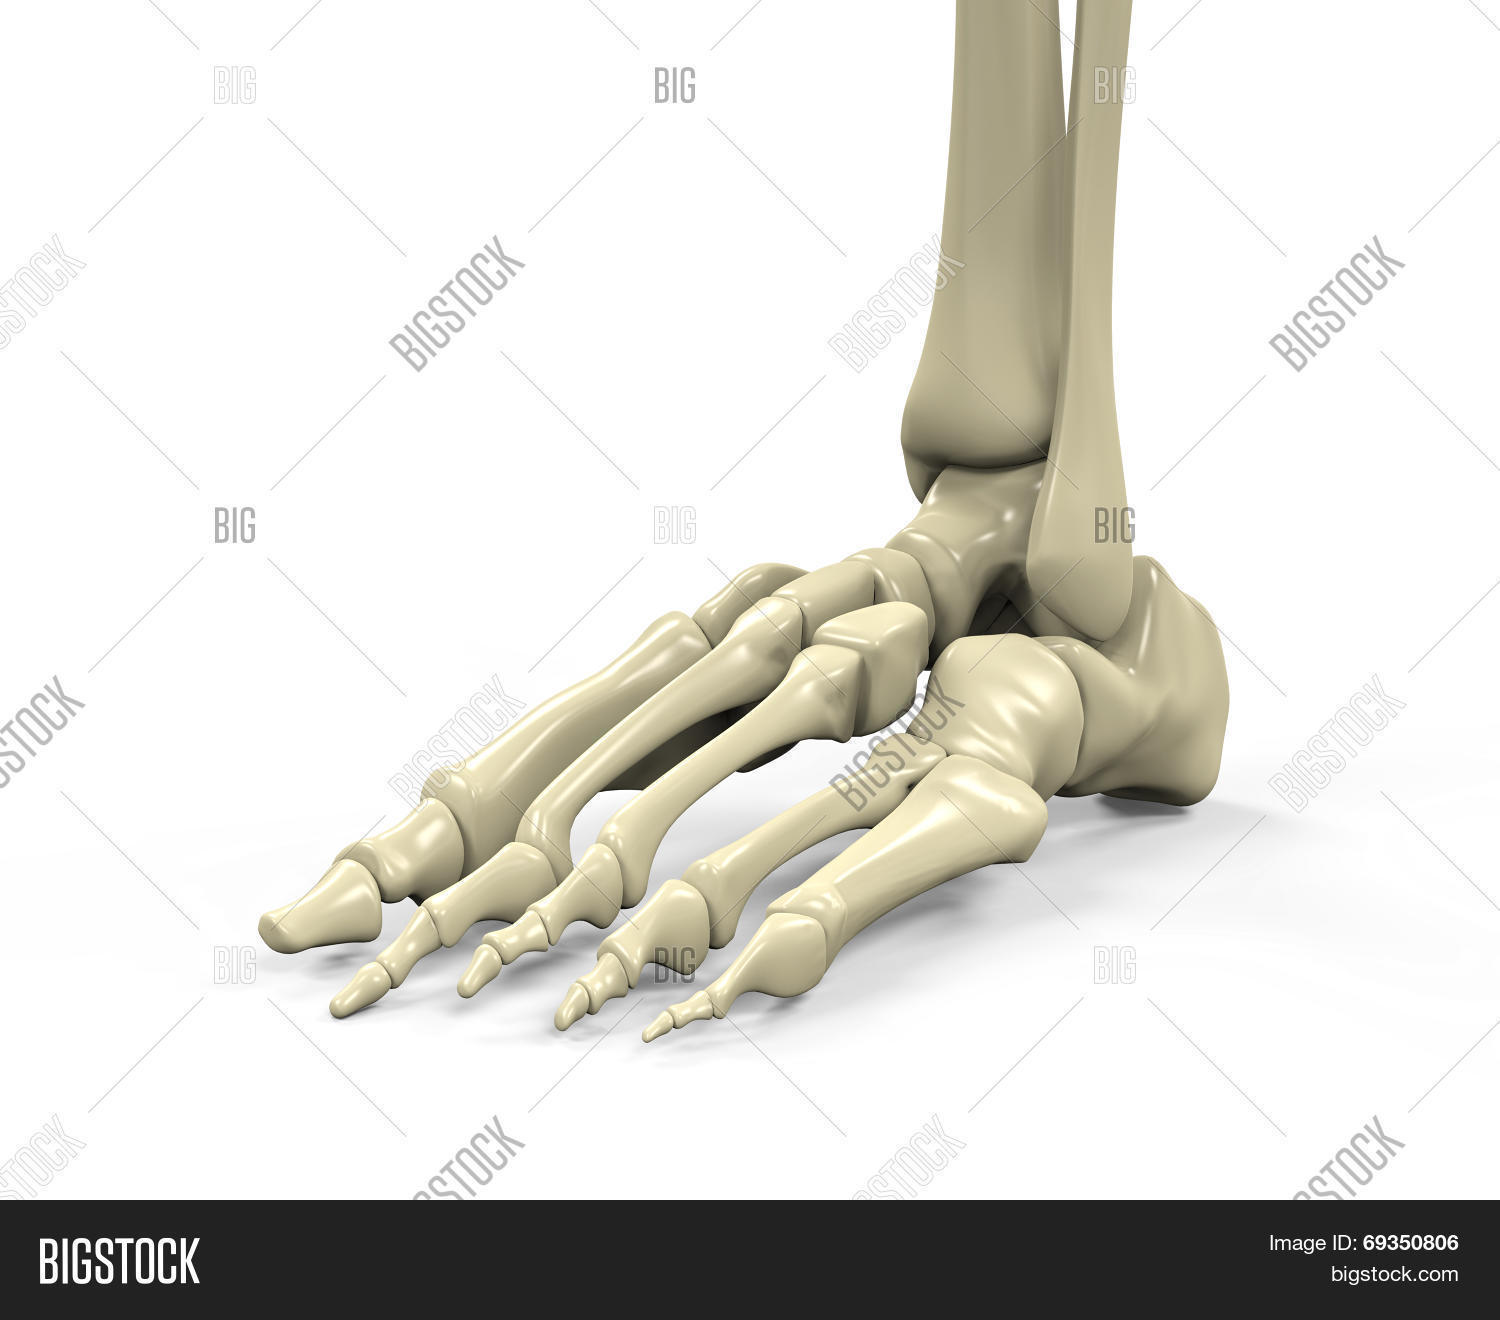 Foot Skeleton Anatomy Image & Photo (Free Trial) | Bigstock